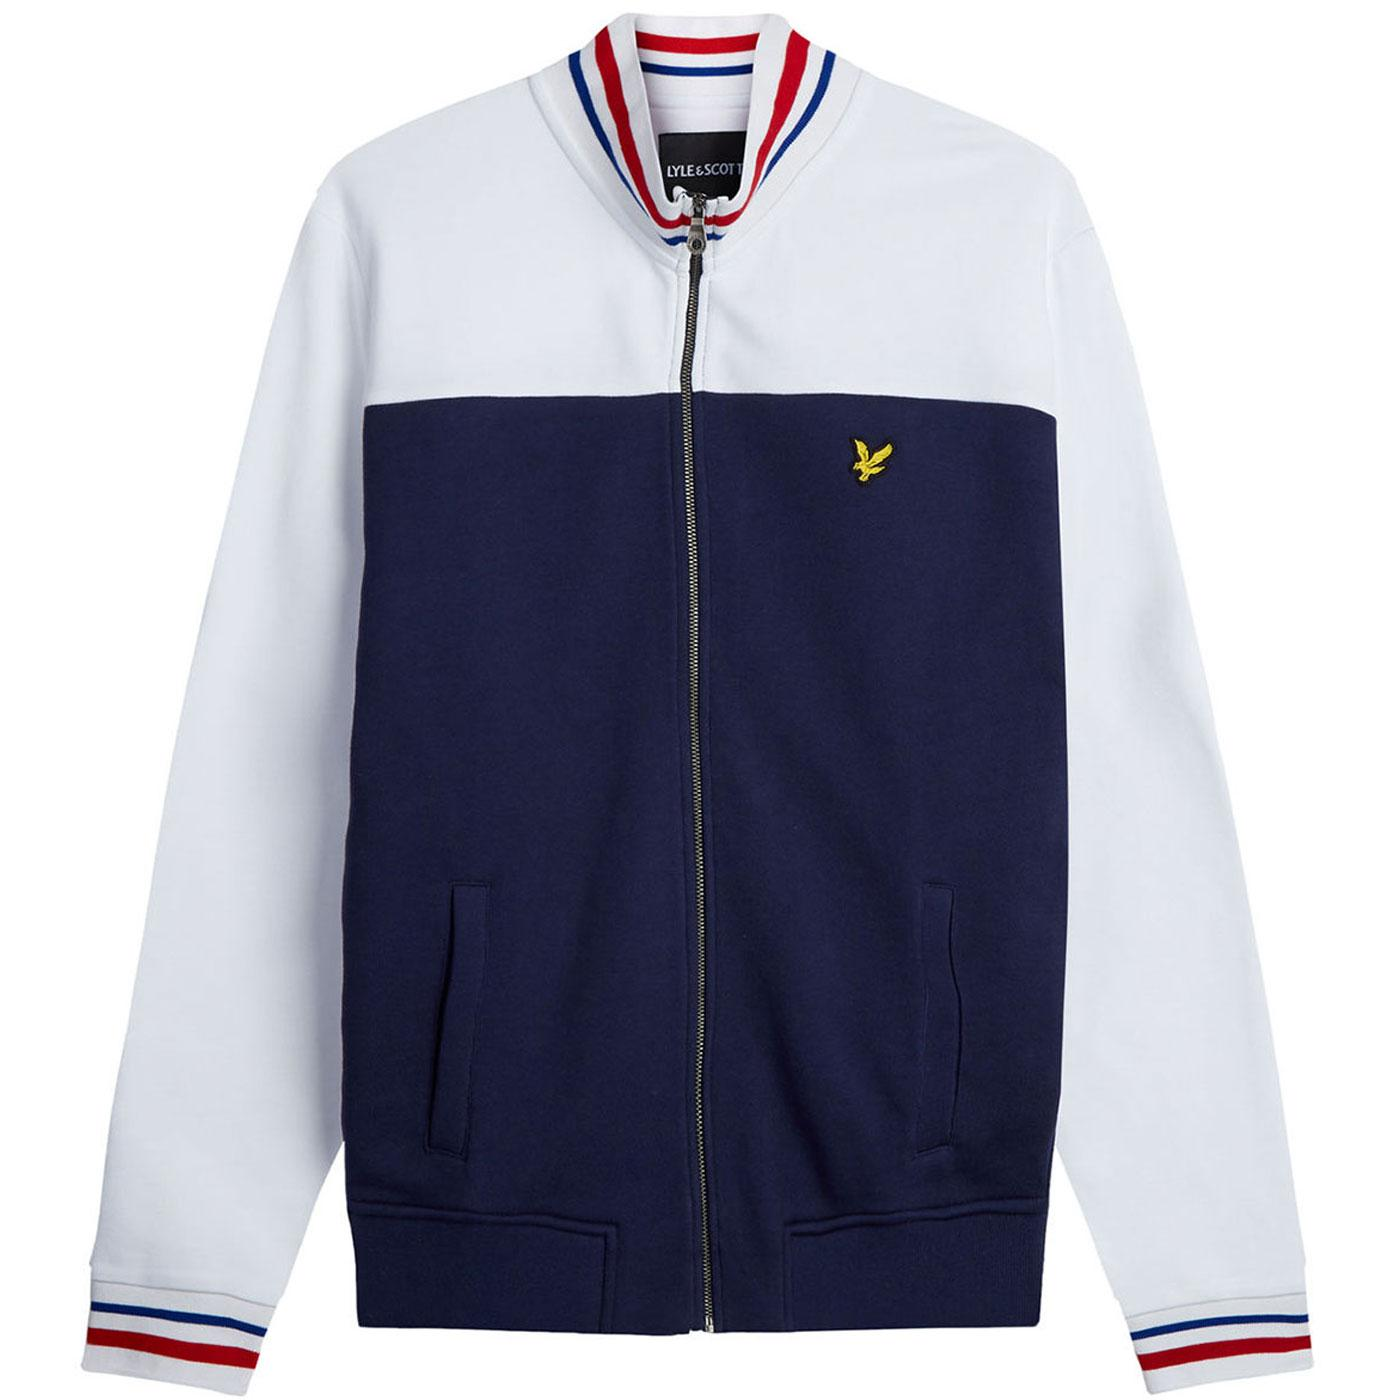 LYLE & SCOTT Retro Indie Tipped Track Top